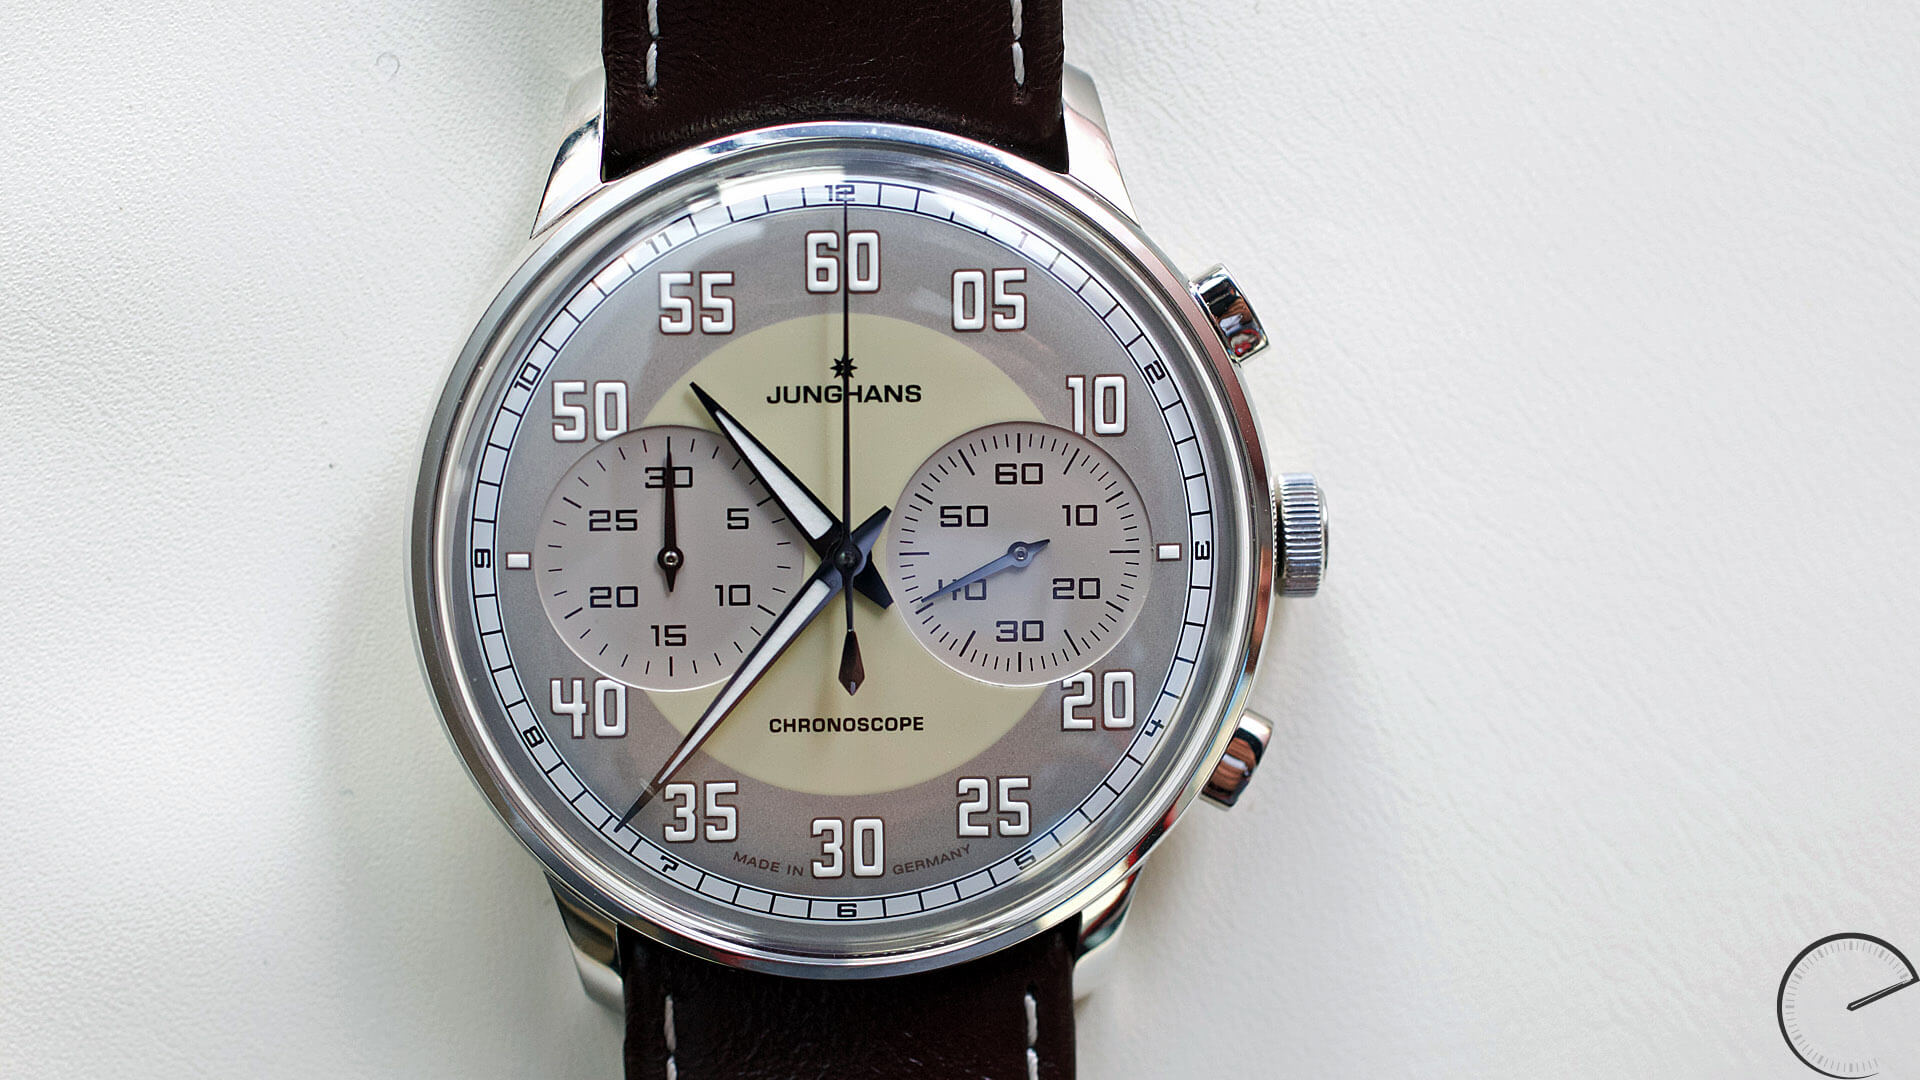 Junghans_Meister_Driver_Chronoscope_case - ESCAPEMENT magazine - watch blog by Angus Davies